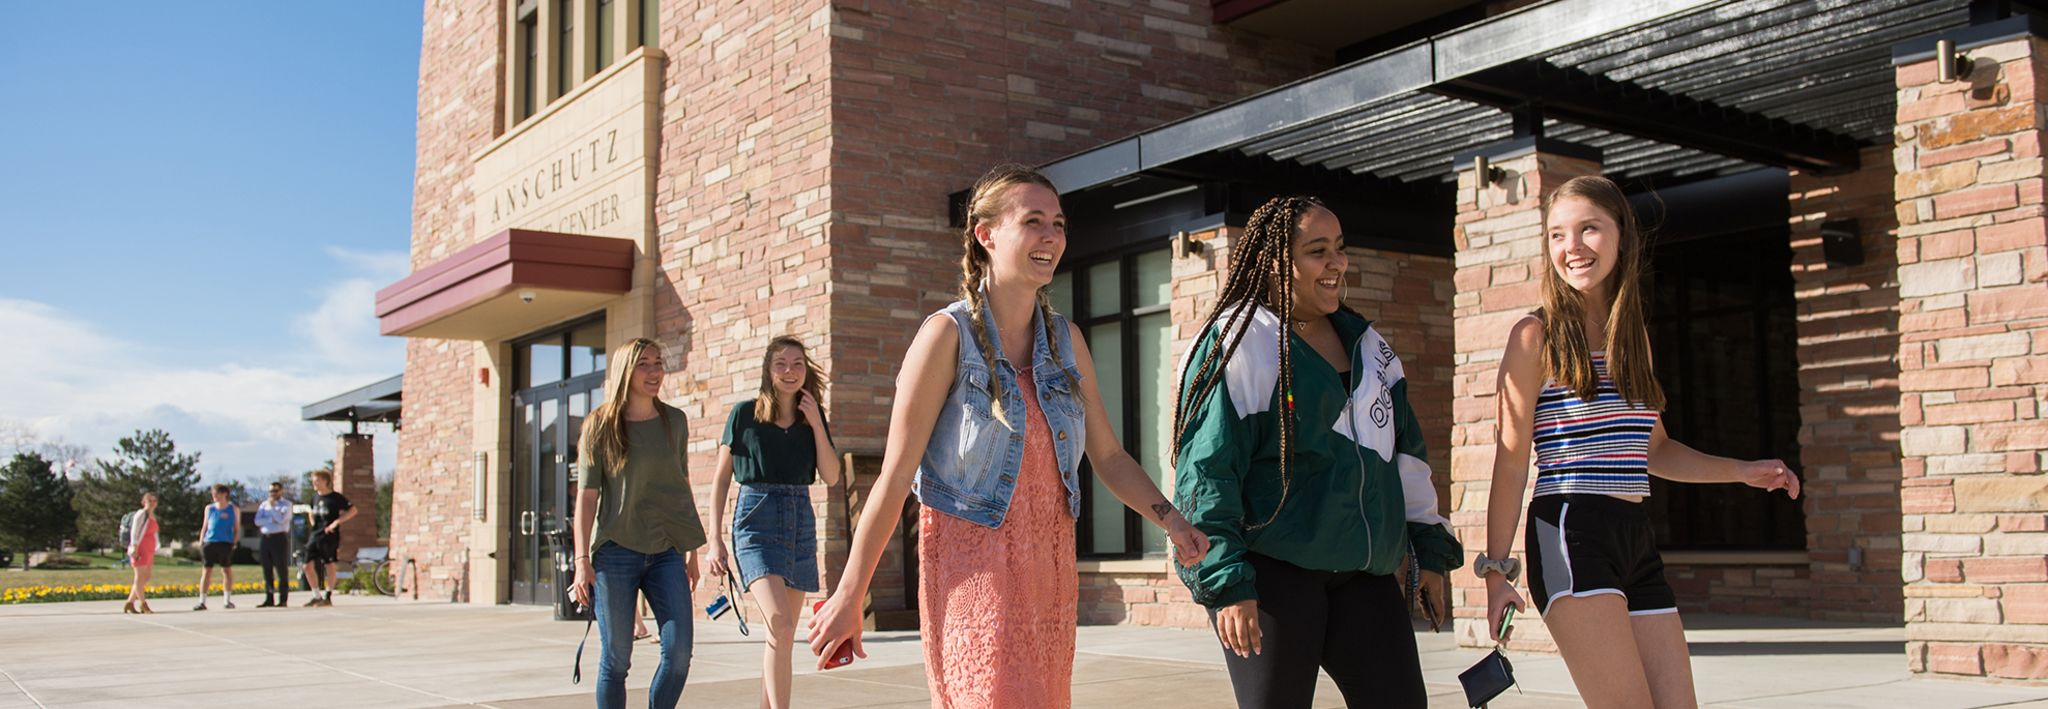 A group of students walking around the CCU campus.